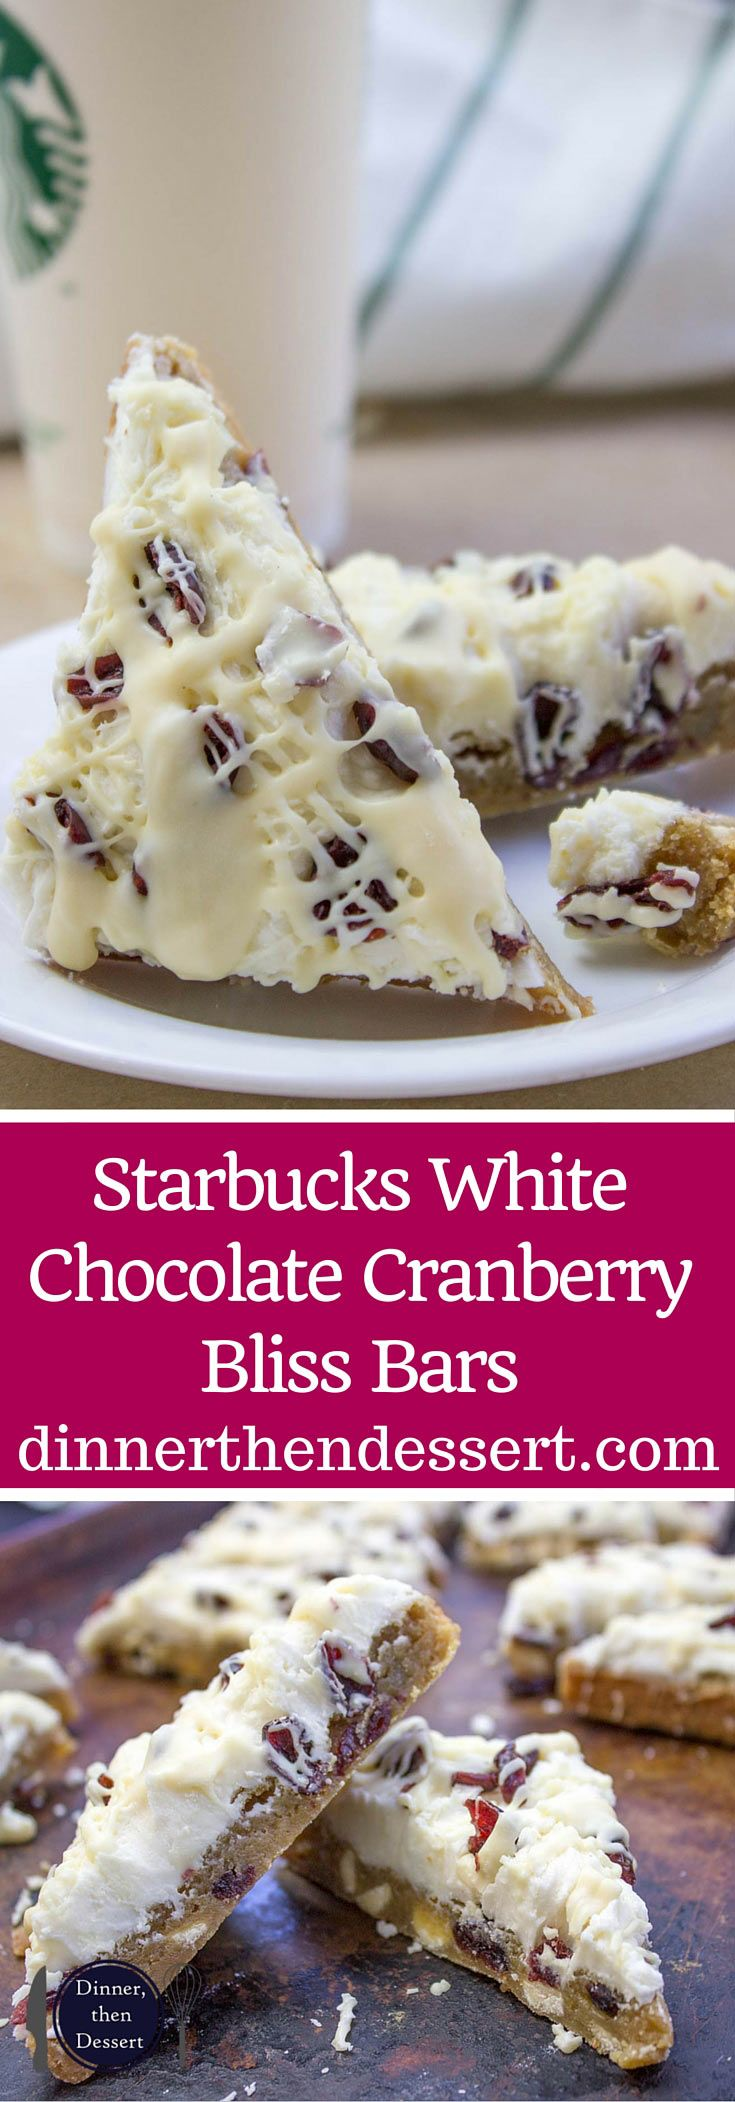 Starbucks White Chocolate Cranberry Bliss Bars are a delicious blondie cookie bar with white chocolate topped with sweet cream cheese icing, tart dried cranberries, and a sweet white chocolate orange drizzle.